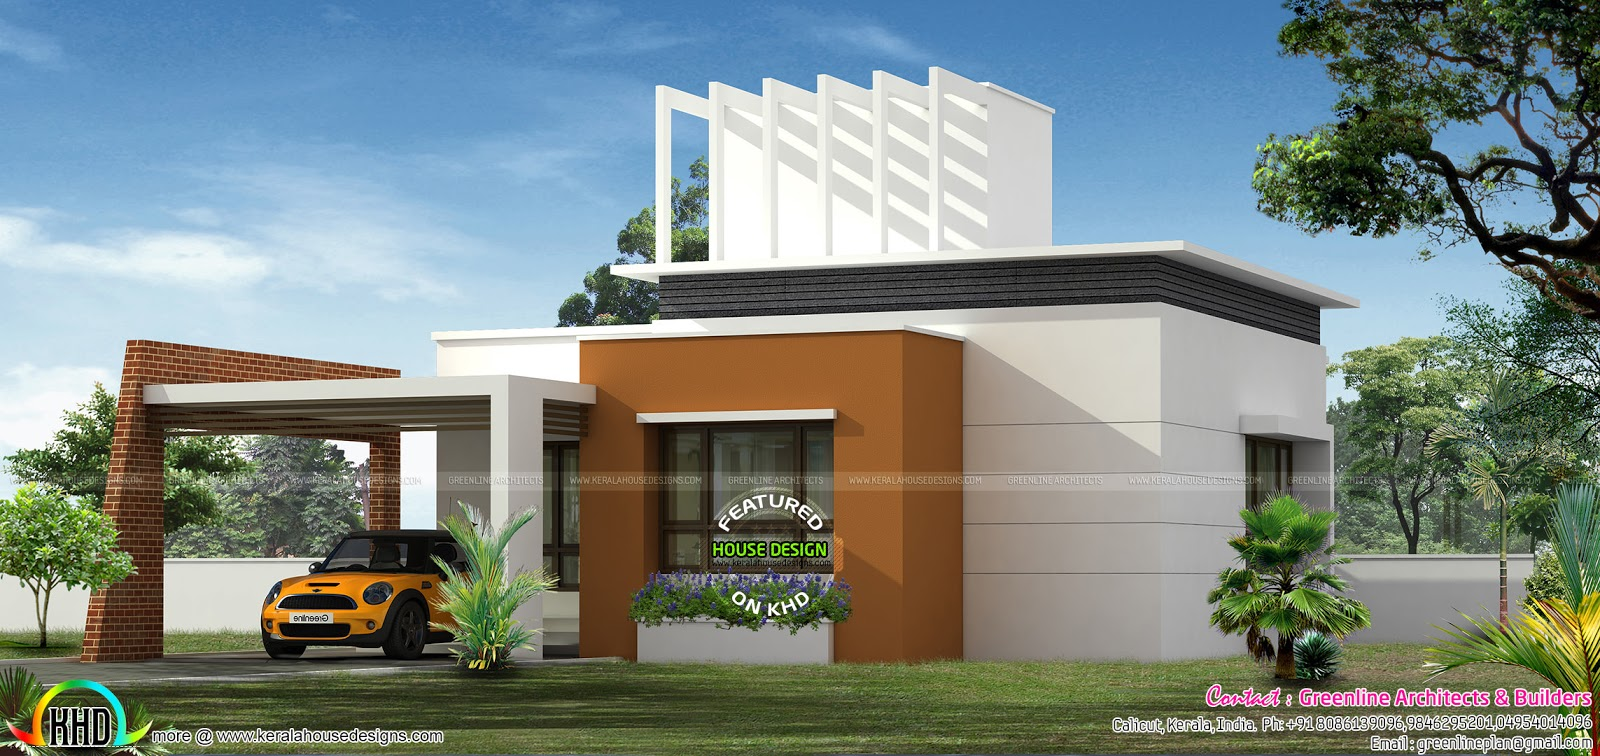 20 lakhs estimate home design kerala home design and floor plans Home design and estimate